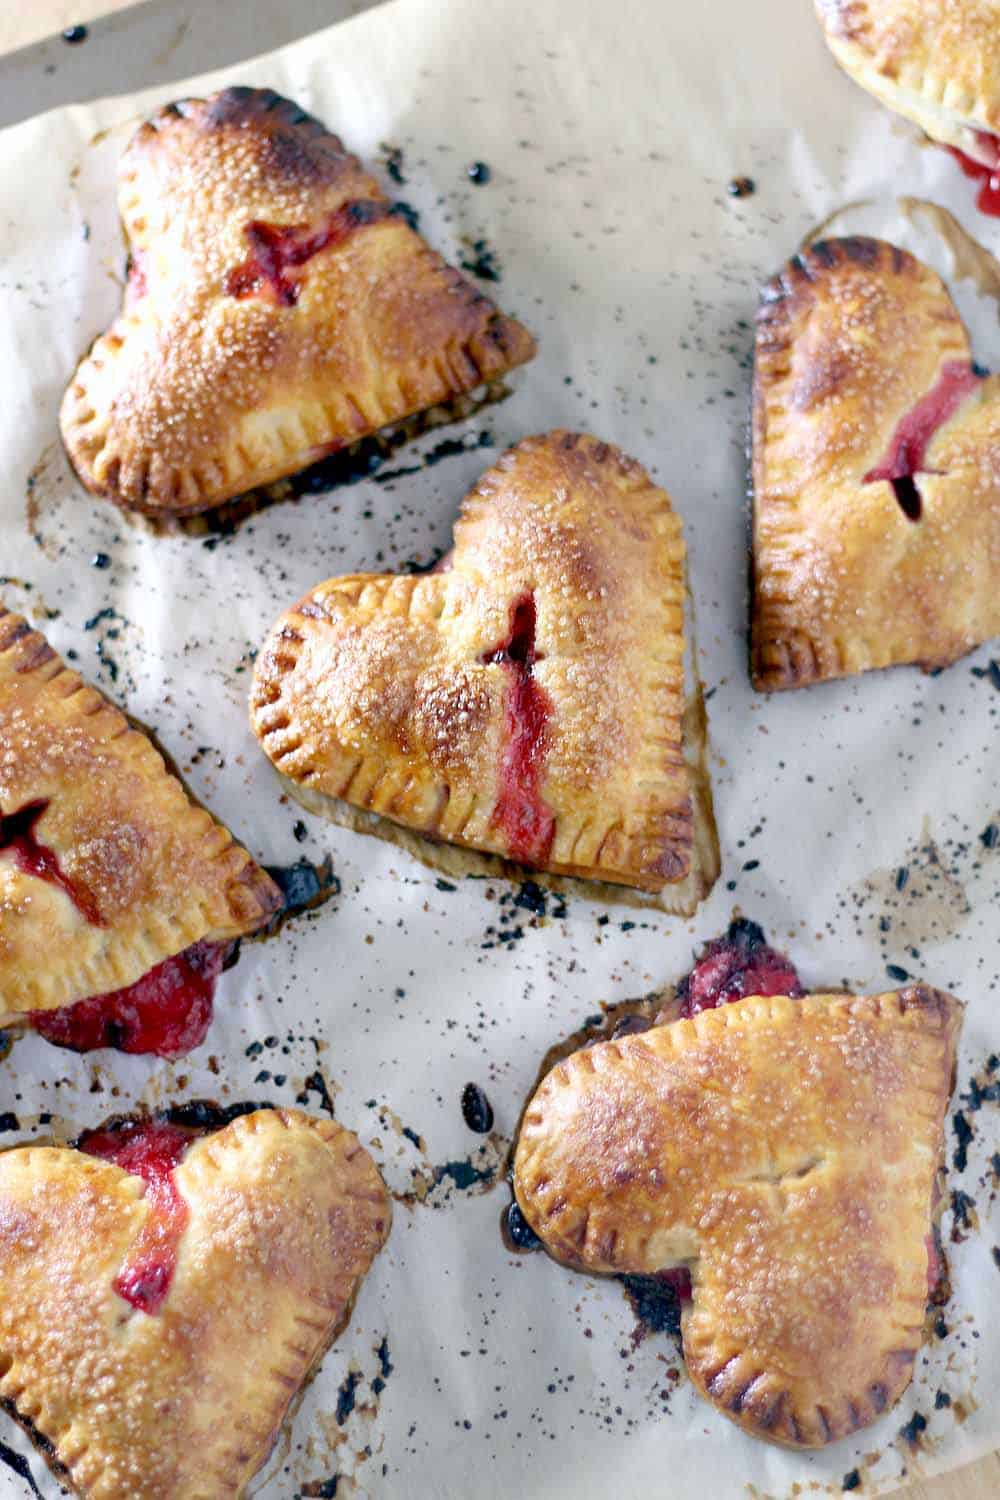 Not only are these mini strawberry ginger hand pies adorable for Valentine's day, but they use very little refined sugar and are the perfect balance of tart and sweet!